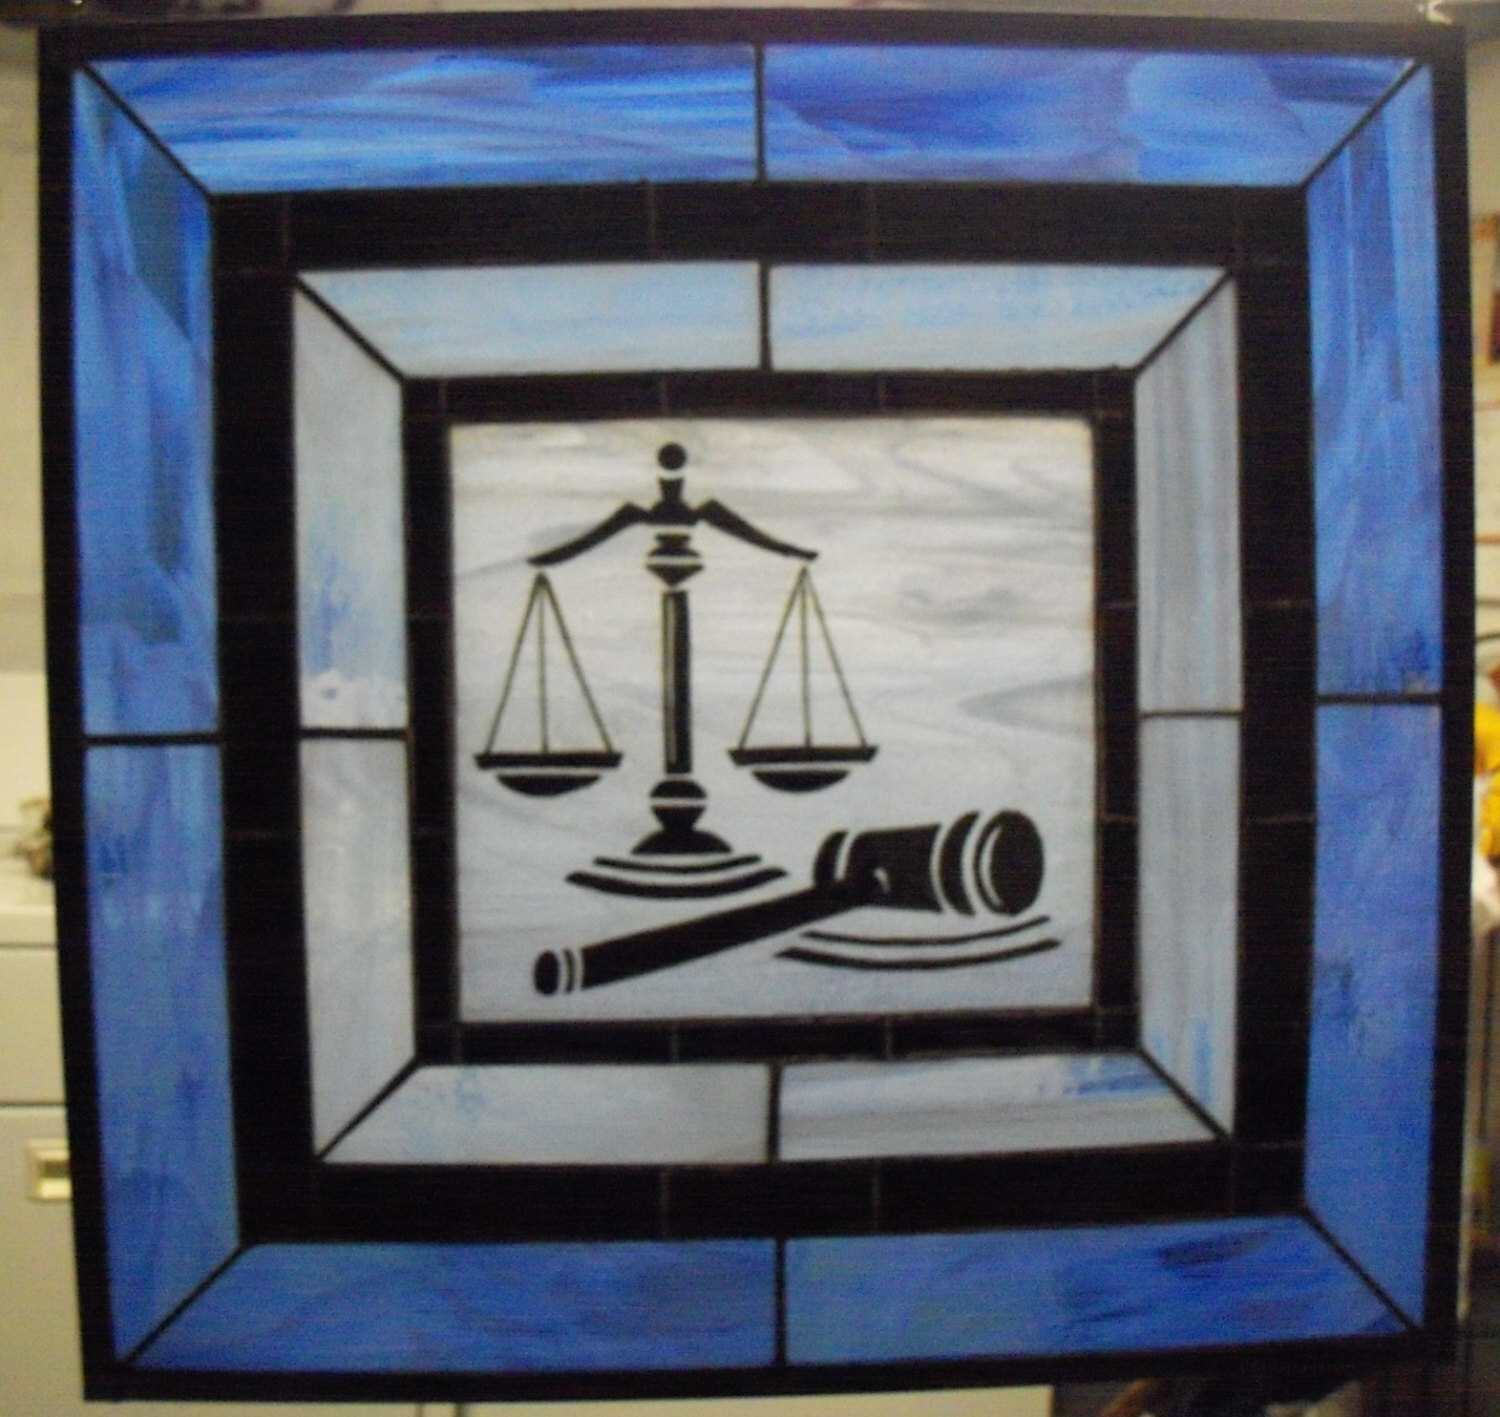 Panels clipart panel judge Lawyer Scales Stained Kiln Panel